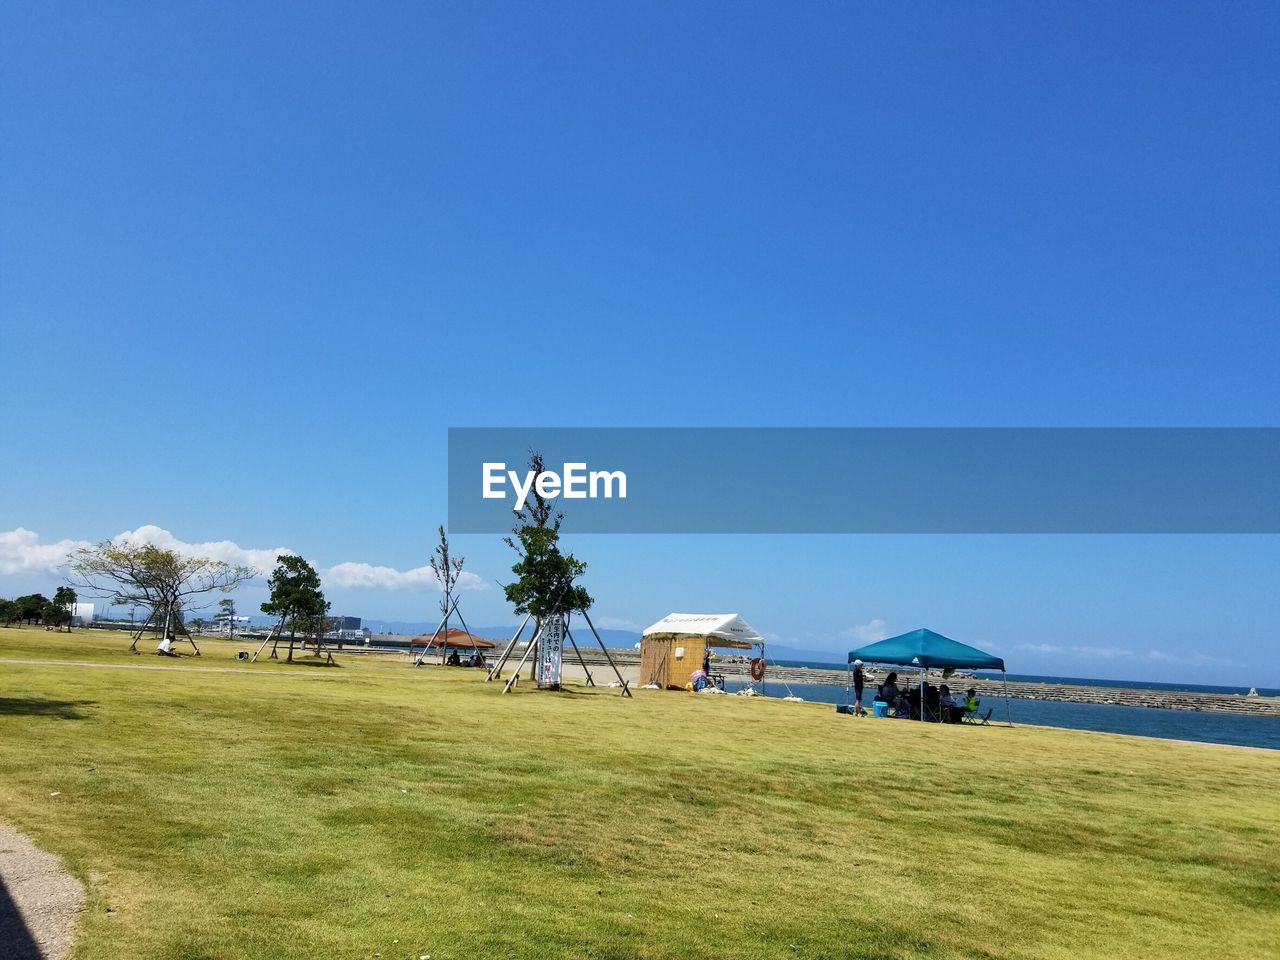 sky, land, plant, grass, blue, clear sky, copy space, tree, field, nature, scenics - nature, day, beauty in nature, tranquility, tranquil scene, environment, green color, landscape, architecture, beach, no people, outdoors